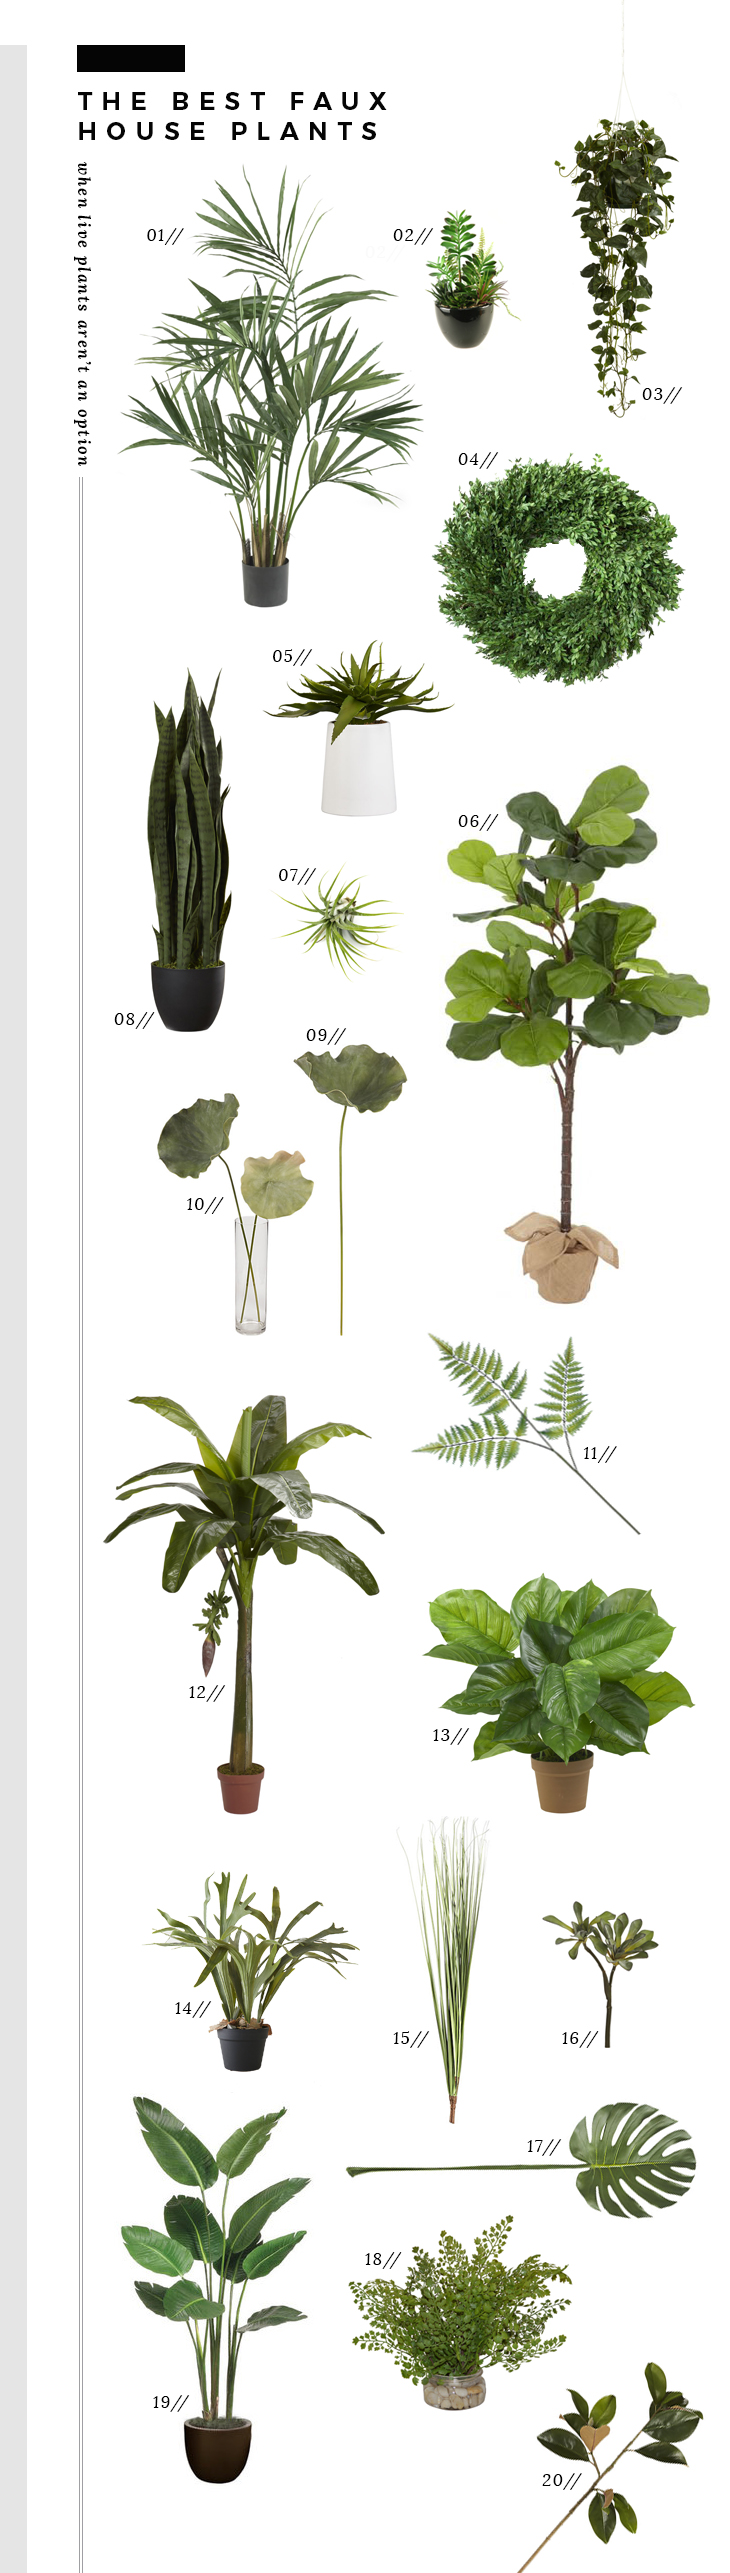 The Best Faux Plants